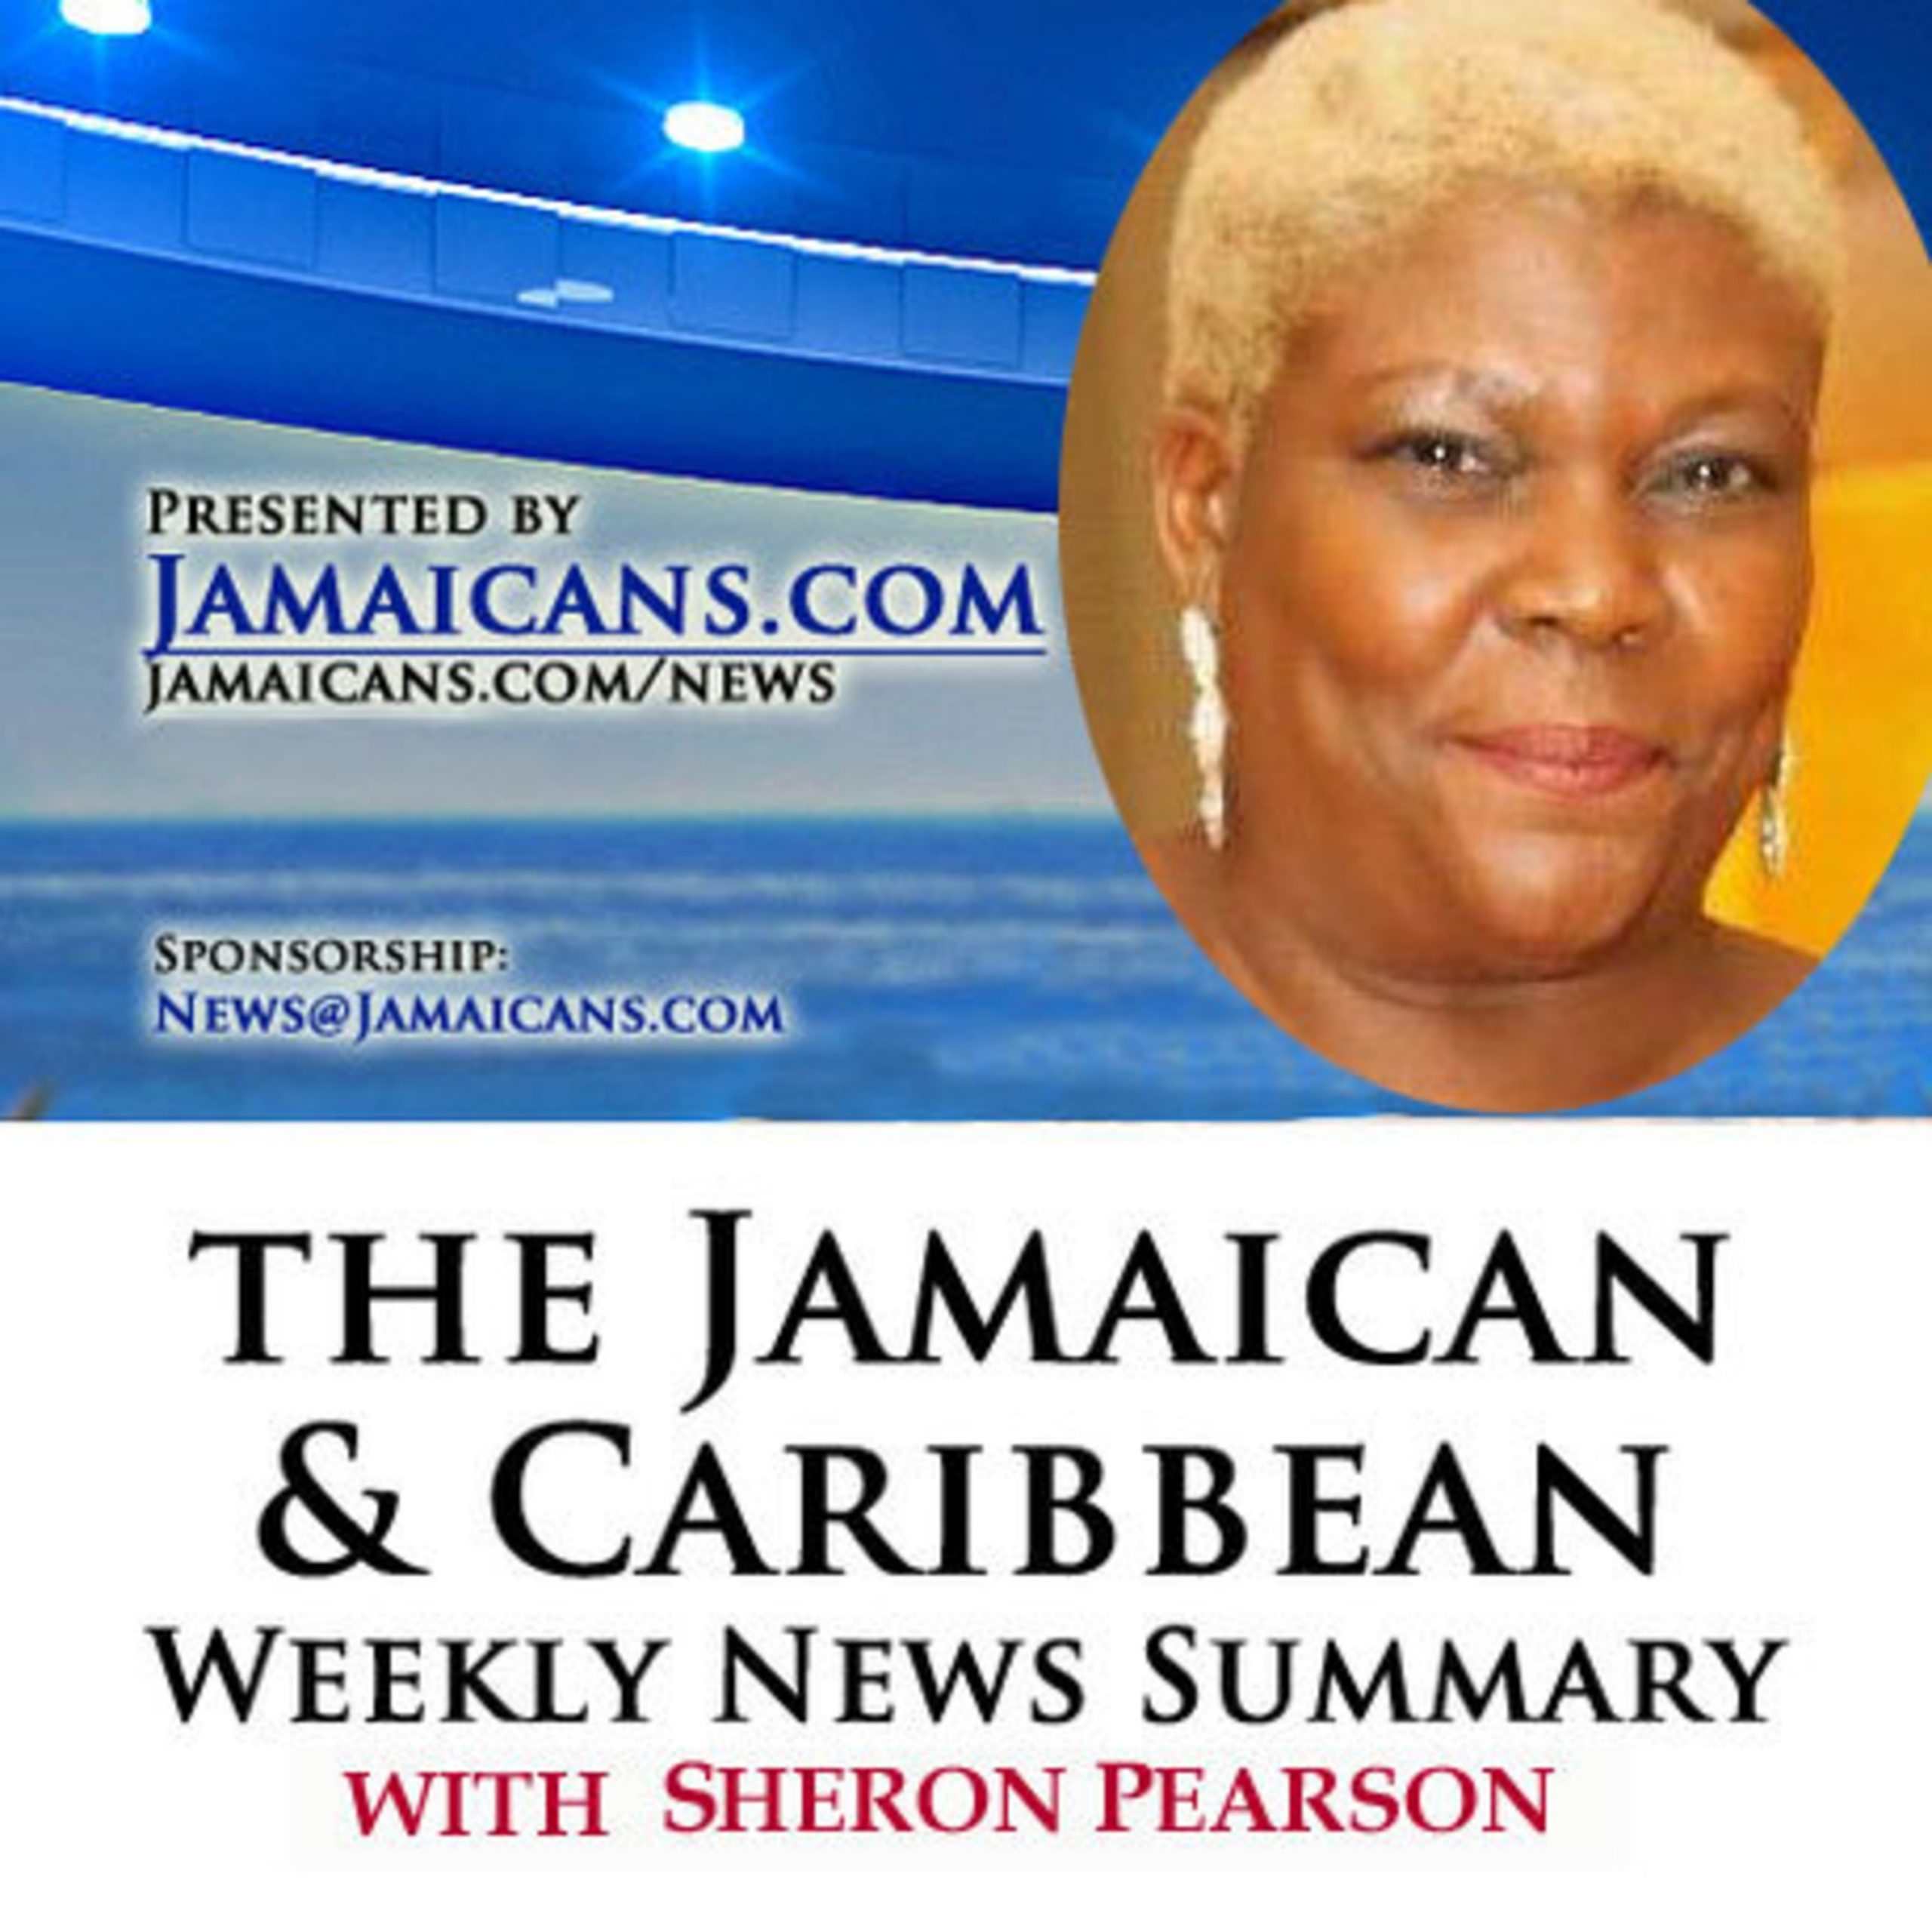 Listen to the Podcast of The Jamaica & Caribbean Weekly News Summary for the week ending October 25, 2019